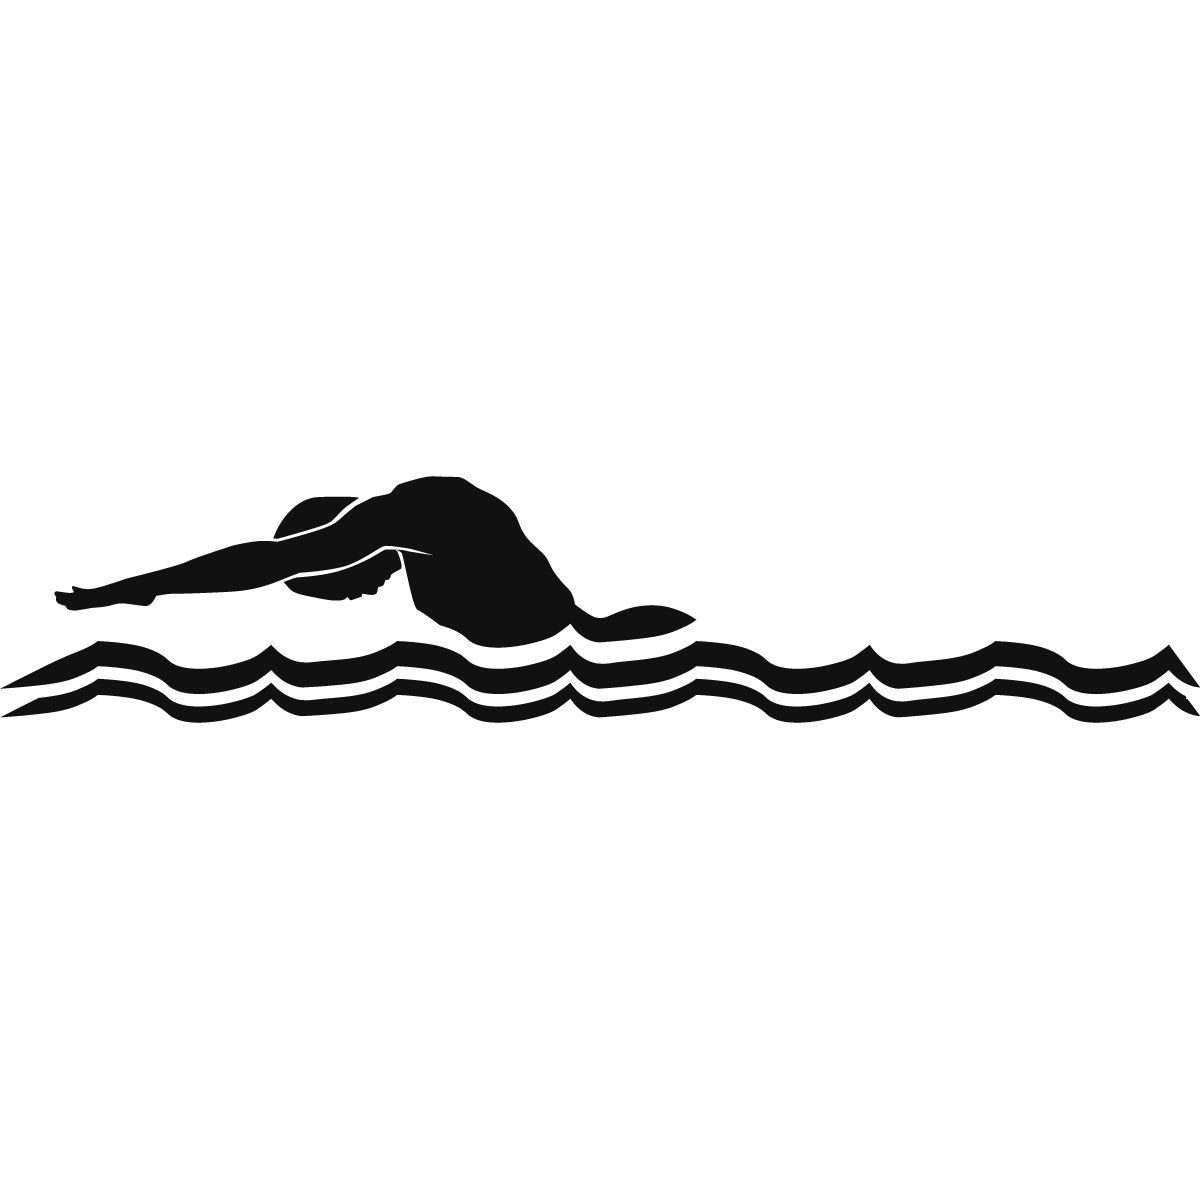 small resolution of clip art male swimmer butterfly stroke green swimming